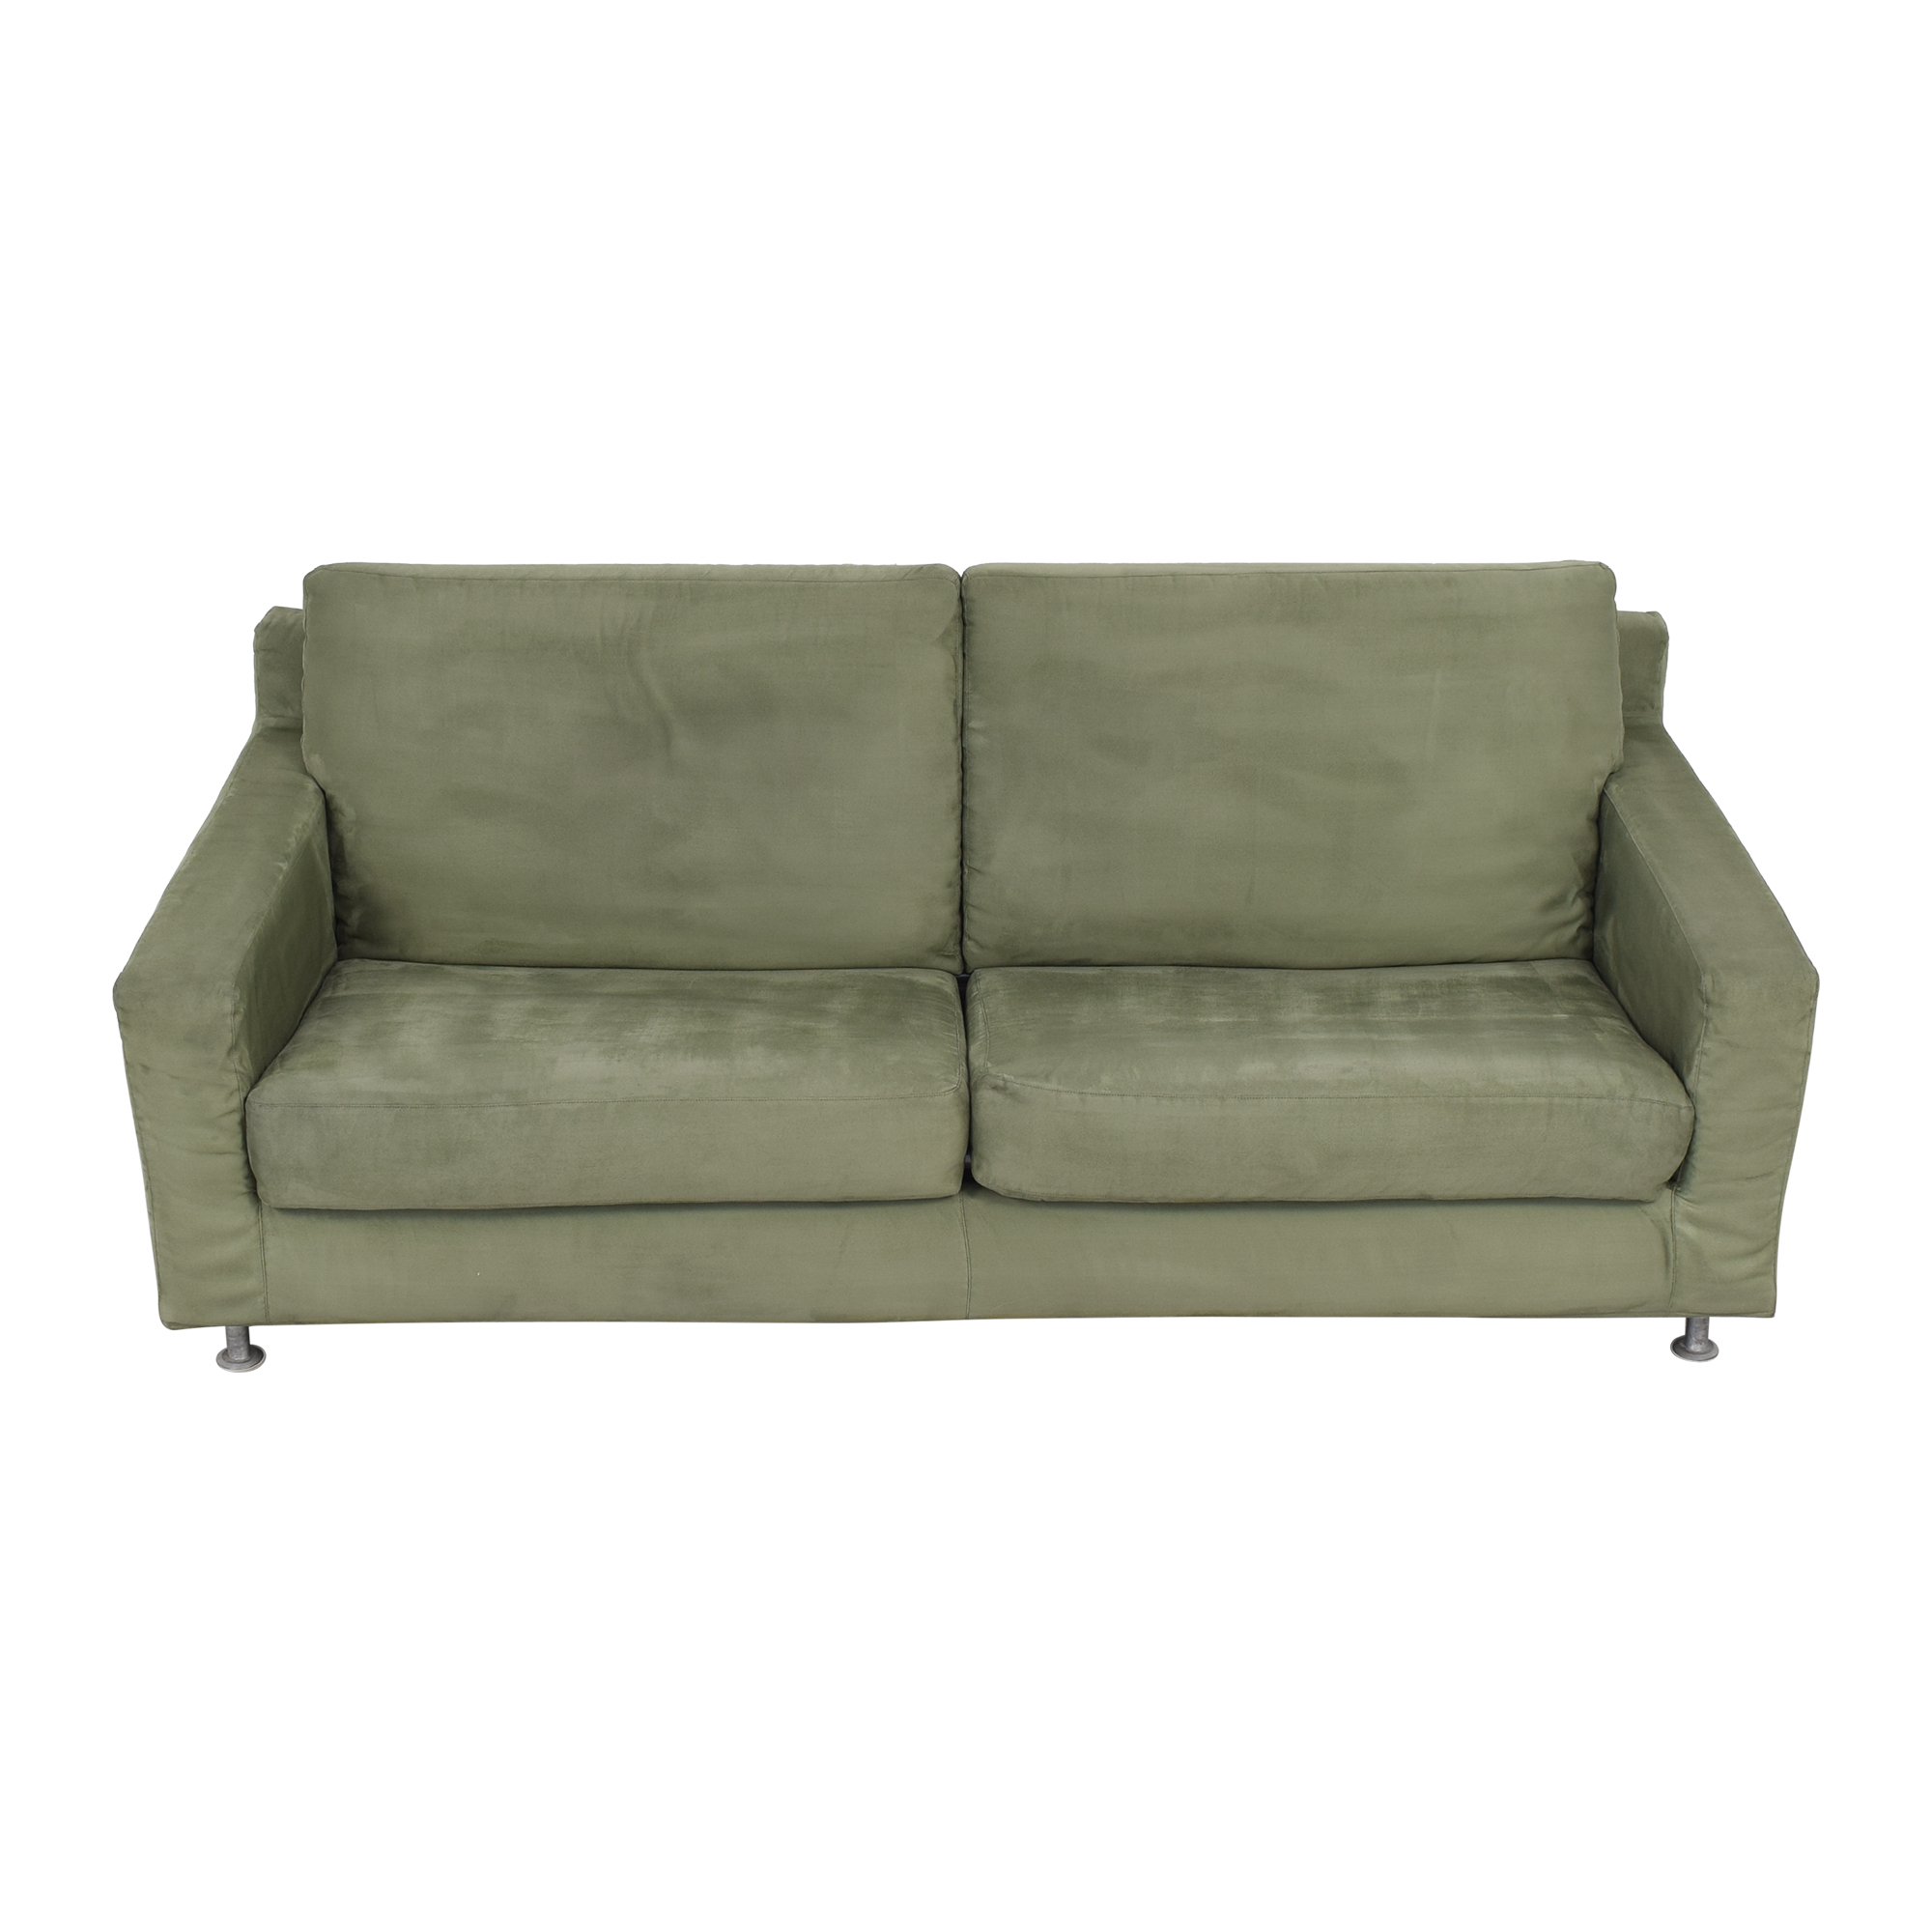 Maurice Villency Sofa Bed / Sofas